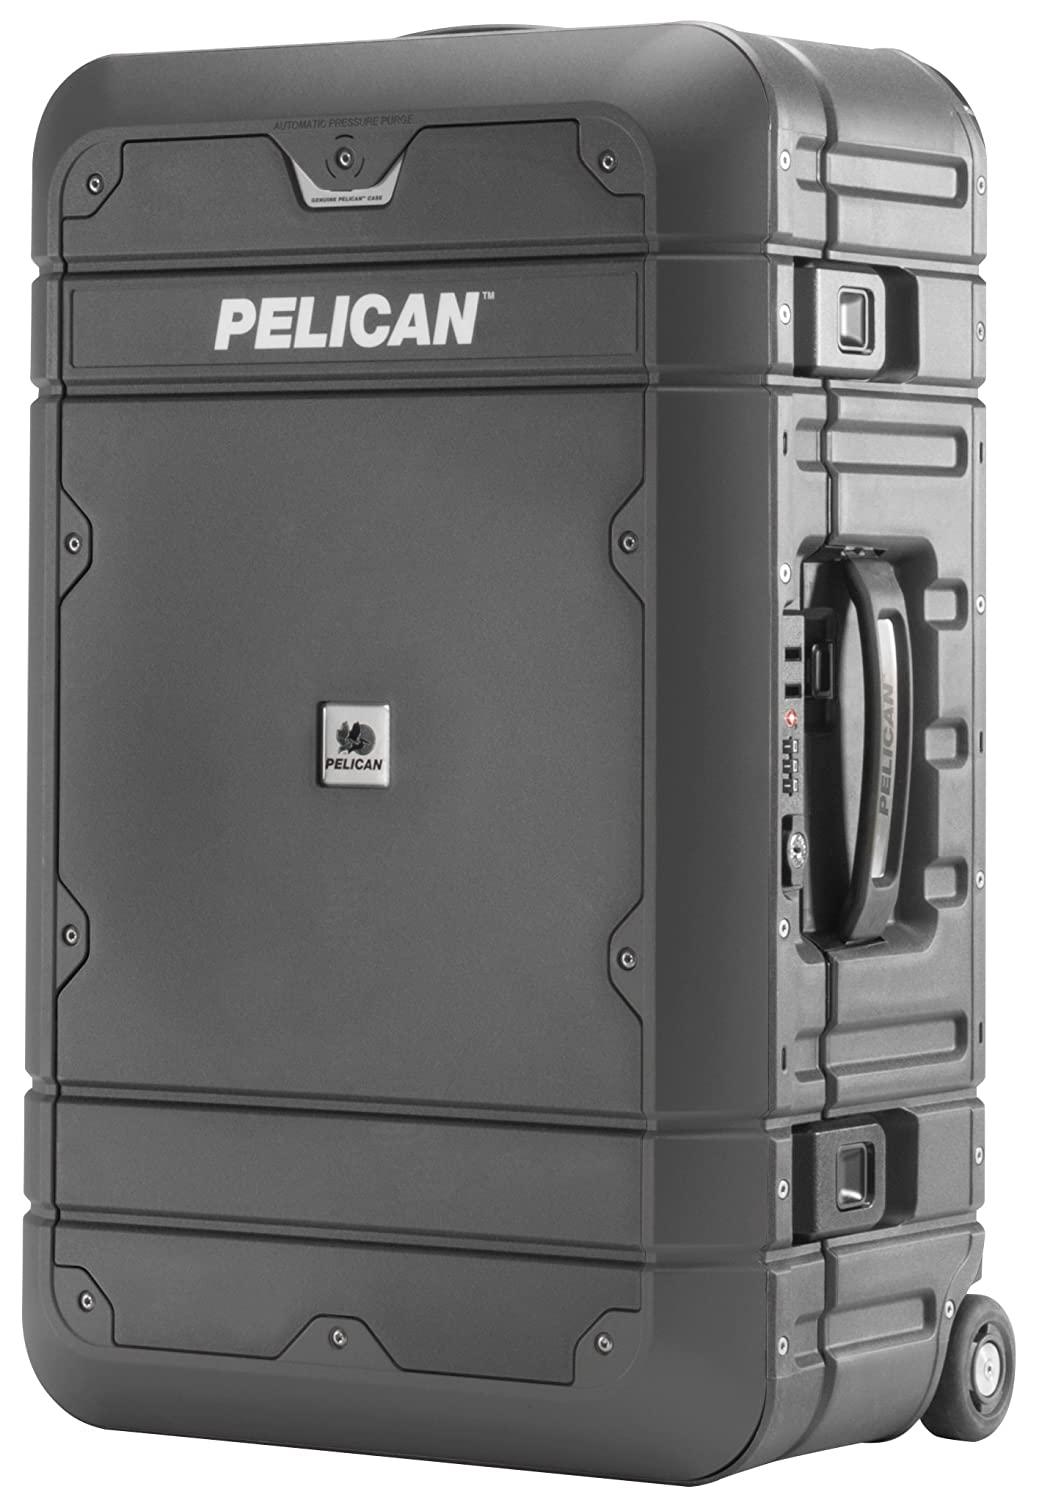 Pelican Elite Luggage | Carry On (Ba22 22 Inch)   Grey/Black by Amazon